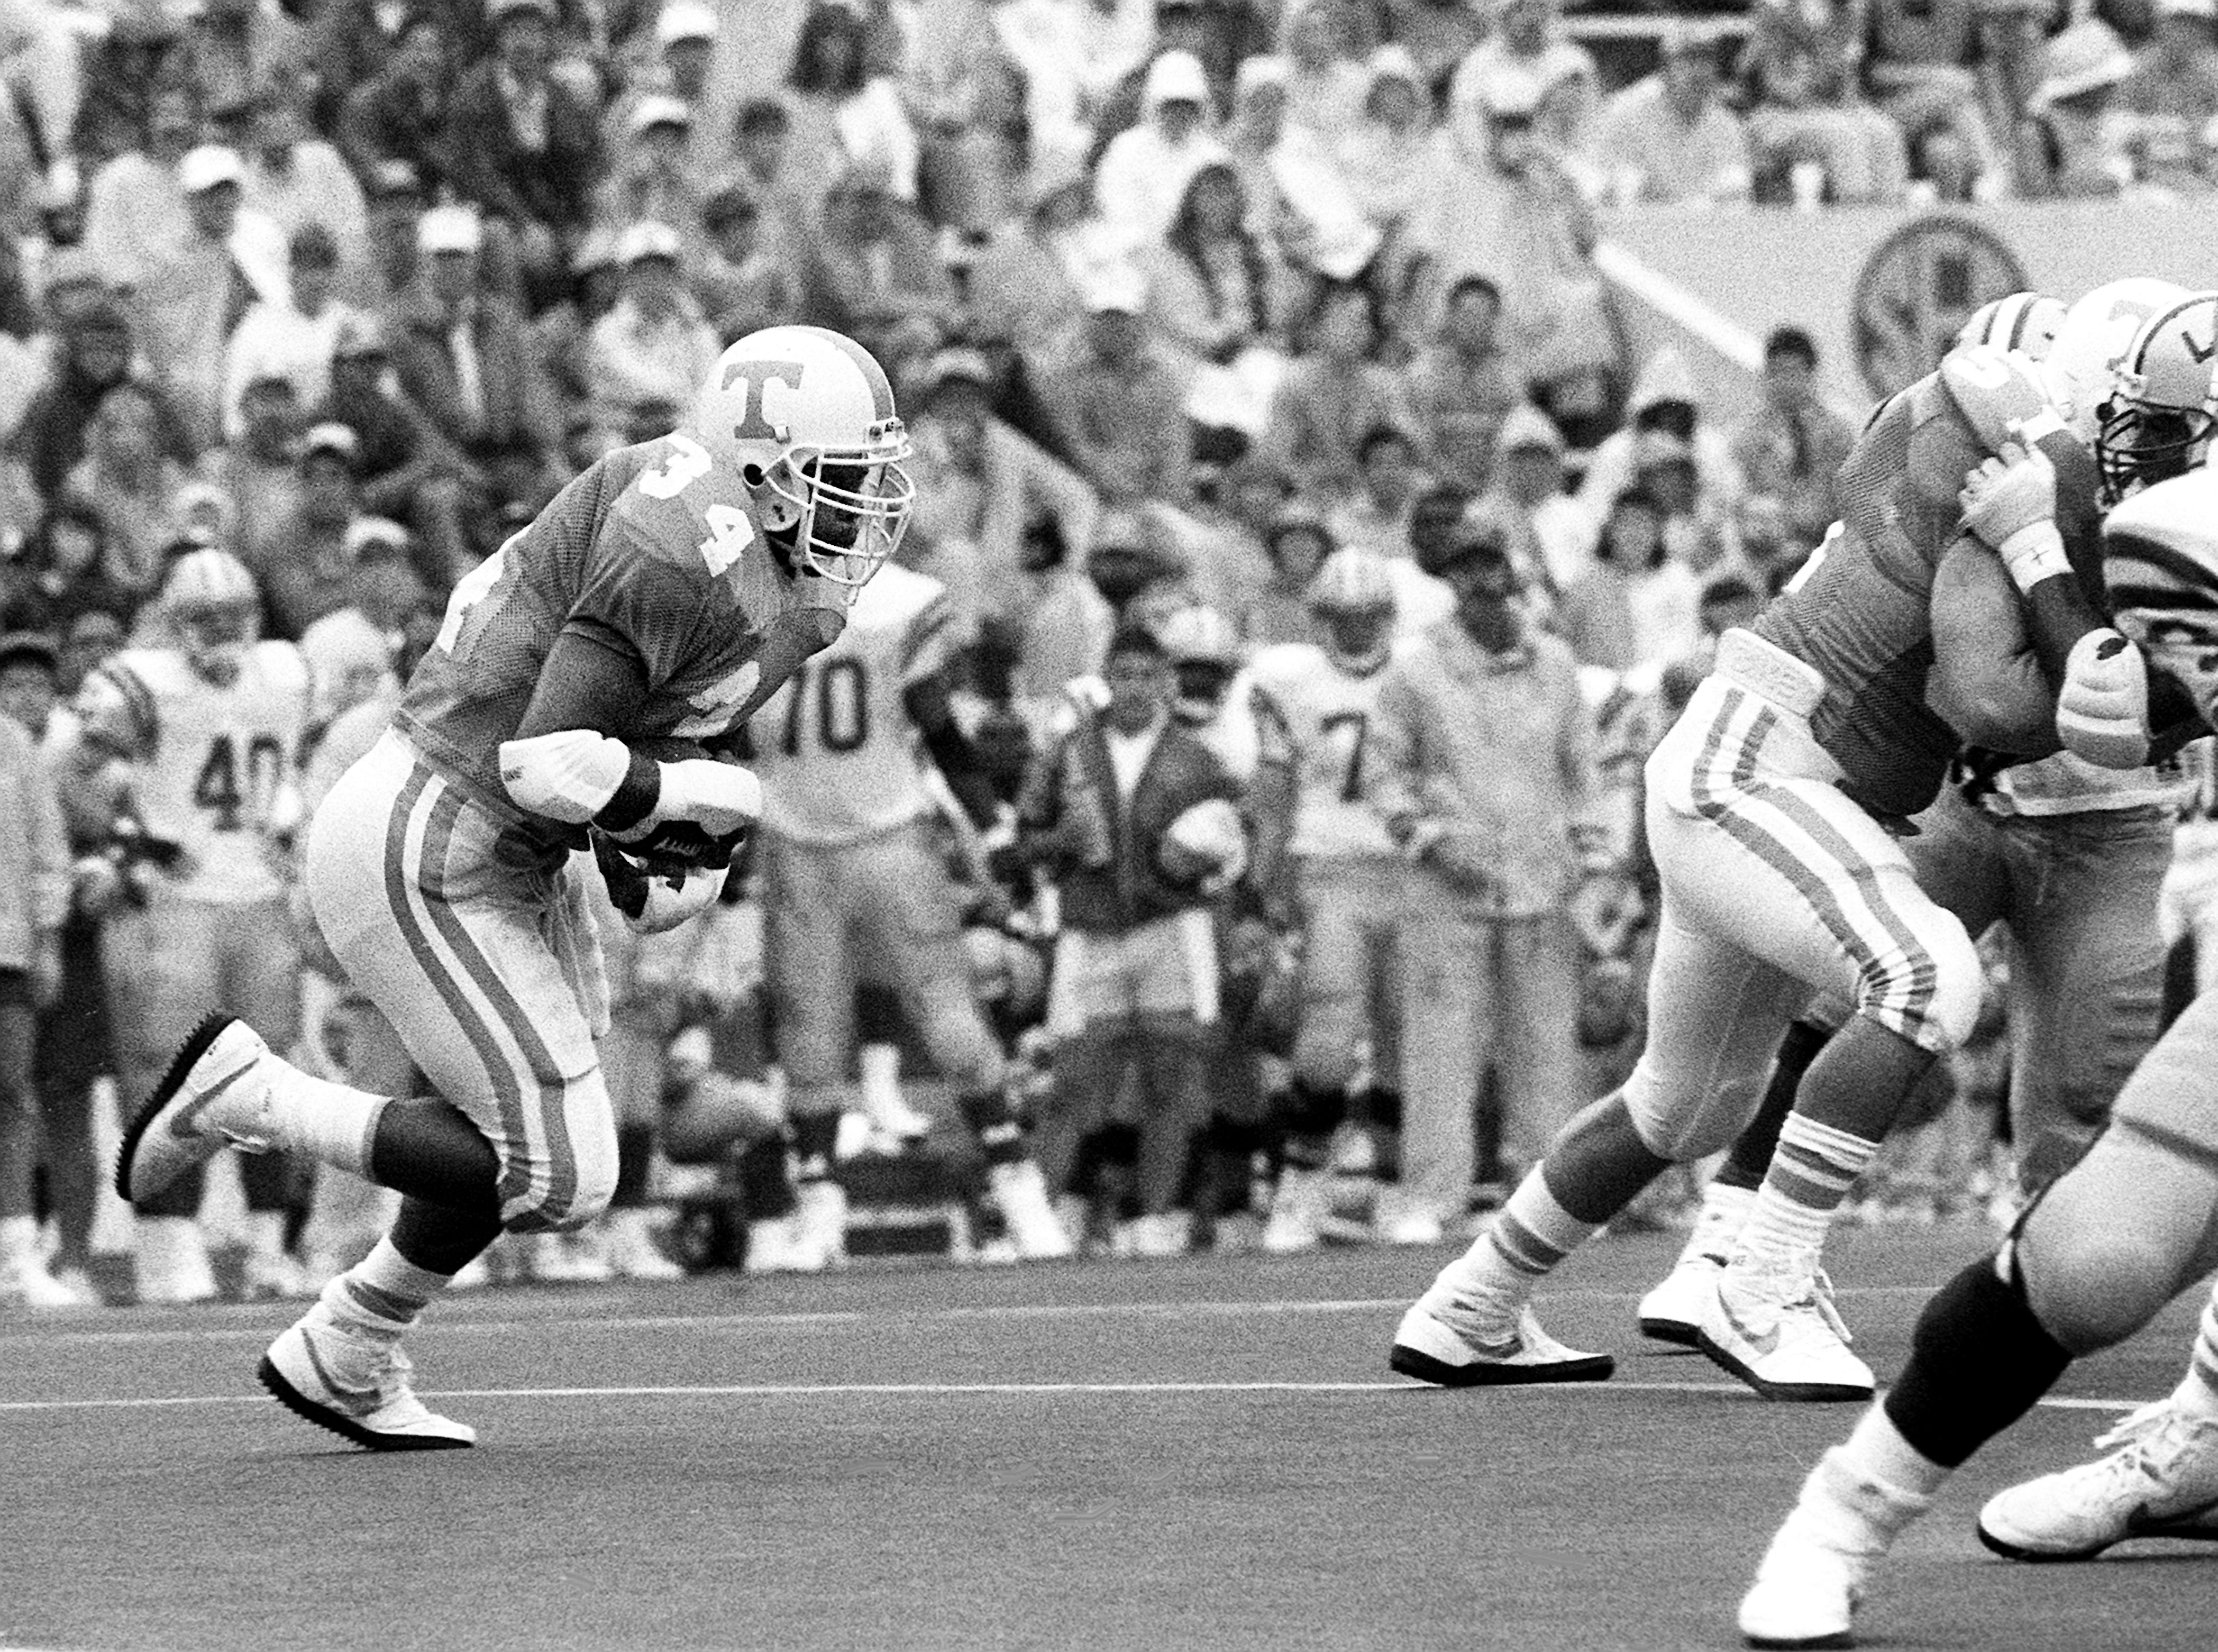 Tennessee junior back Reggie Cobb (34) picks up some of his 52 yards on 16 carries against LSU in the game. Winless Tennessee fall 34-9 to ninth-ranked LSU before 92,849 fans at Neyland Stadium in Knoxville.